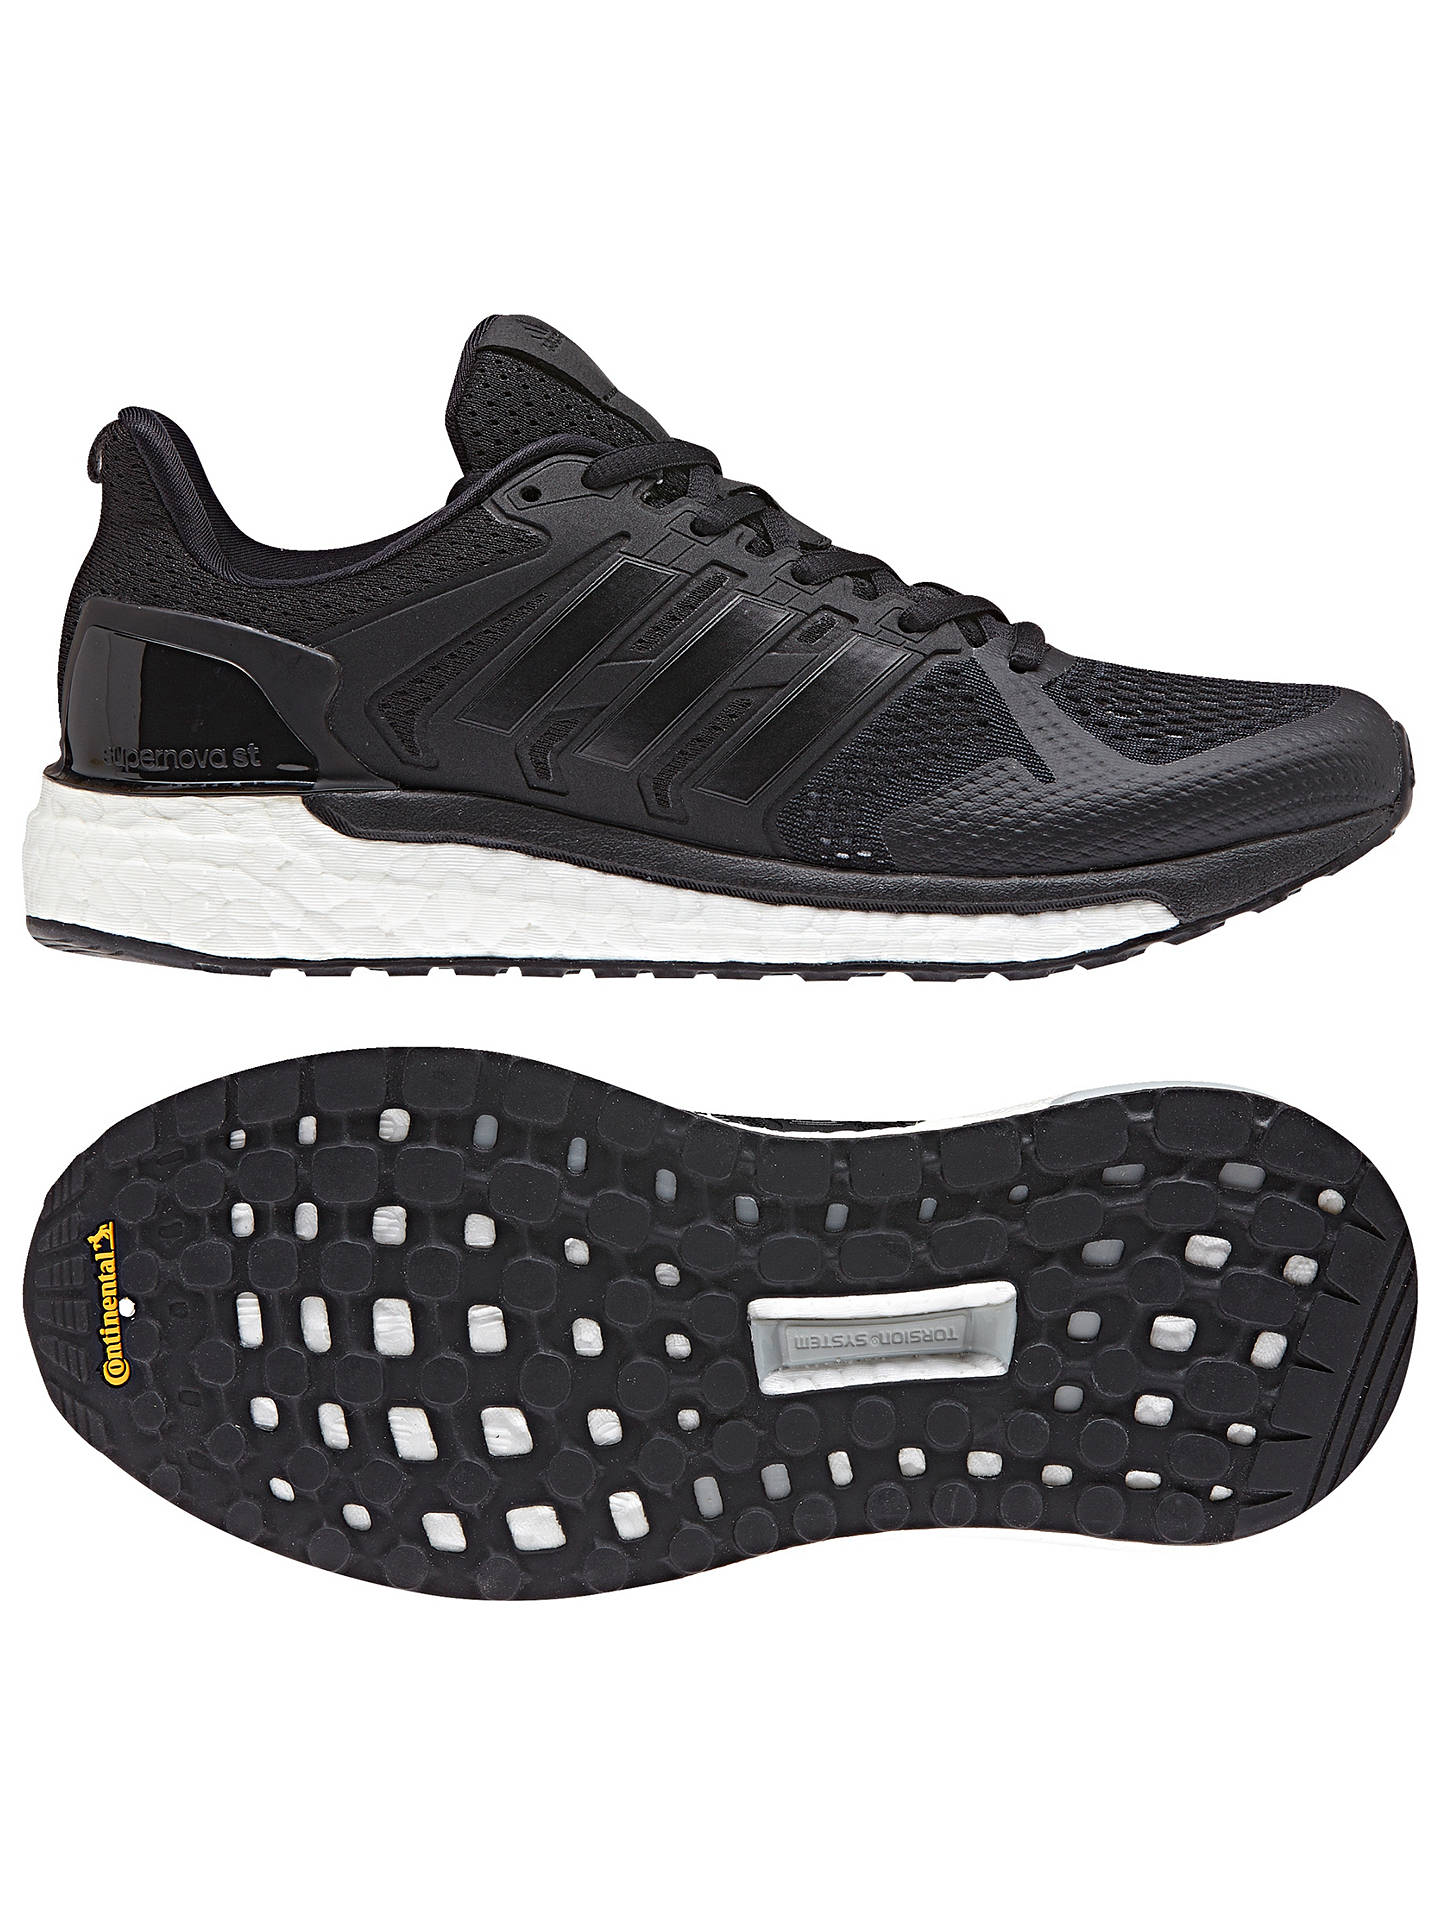 e8cd9773ceb00 adidas Supernova ST Women s Running Shoes at John Lewis   Partners